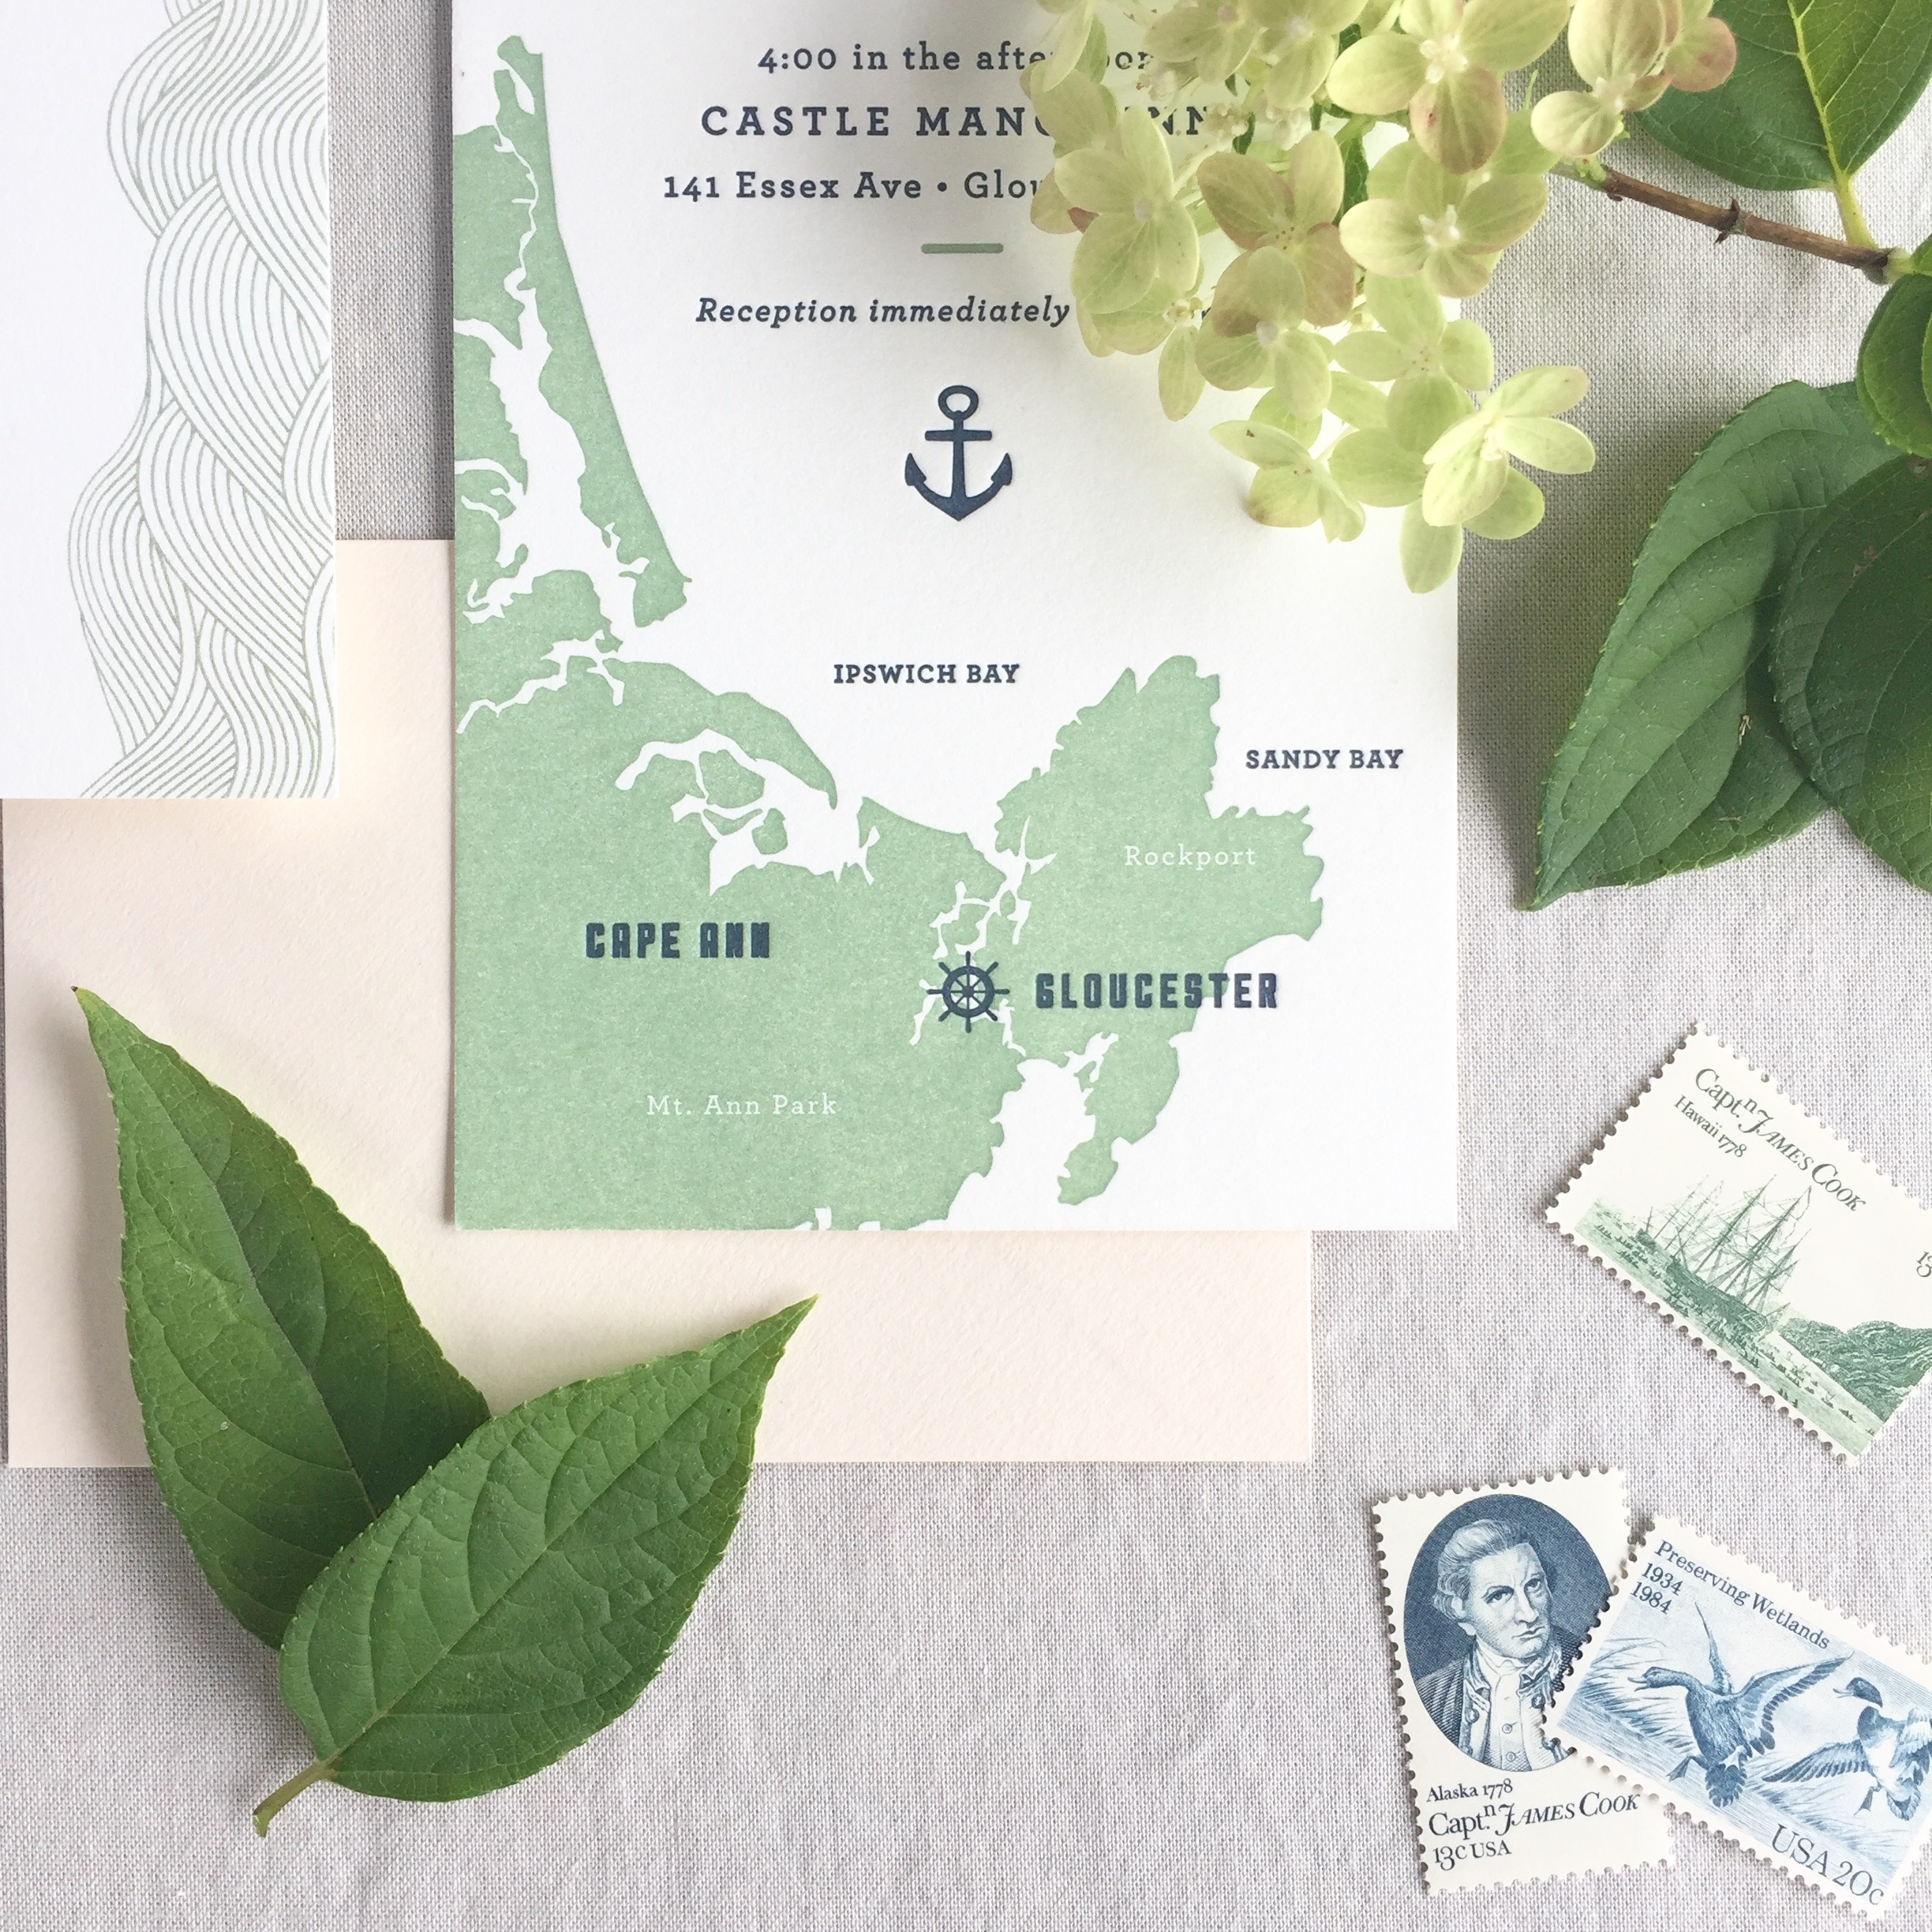 Maria_Bond_Design_New_England_Wedding_Invite.jpg